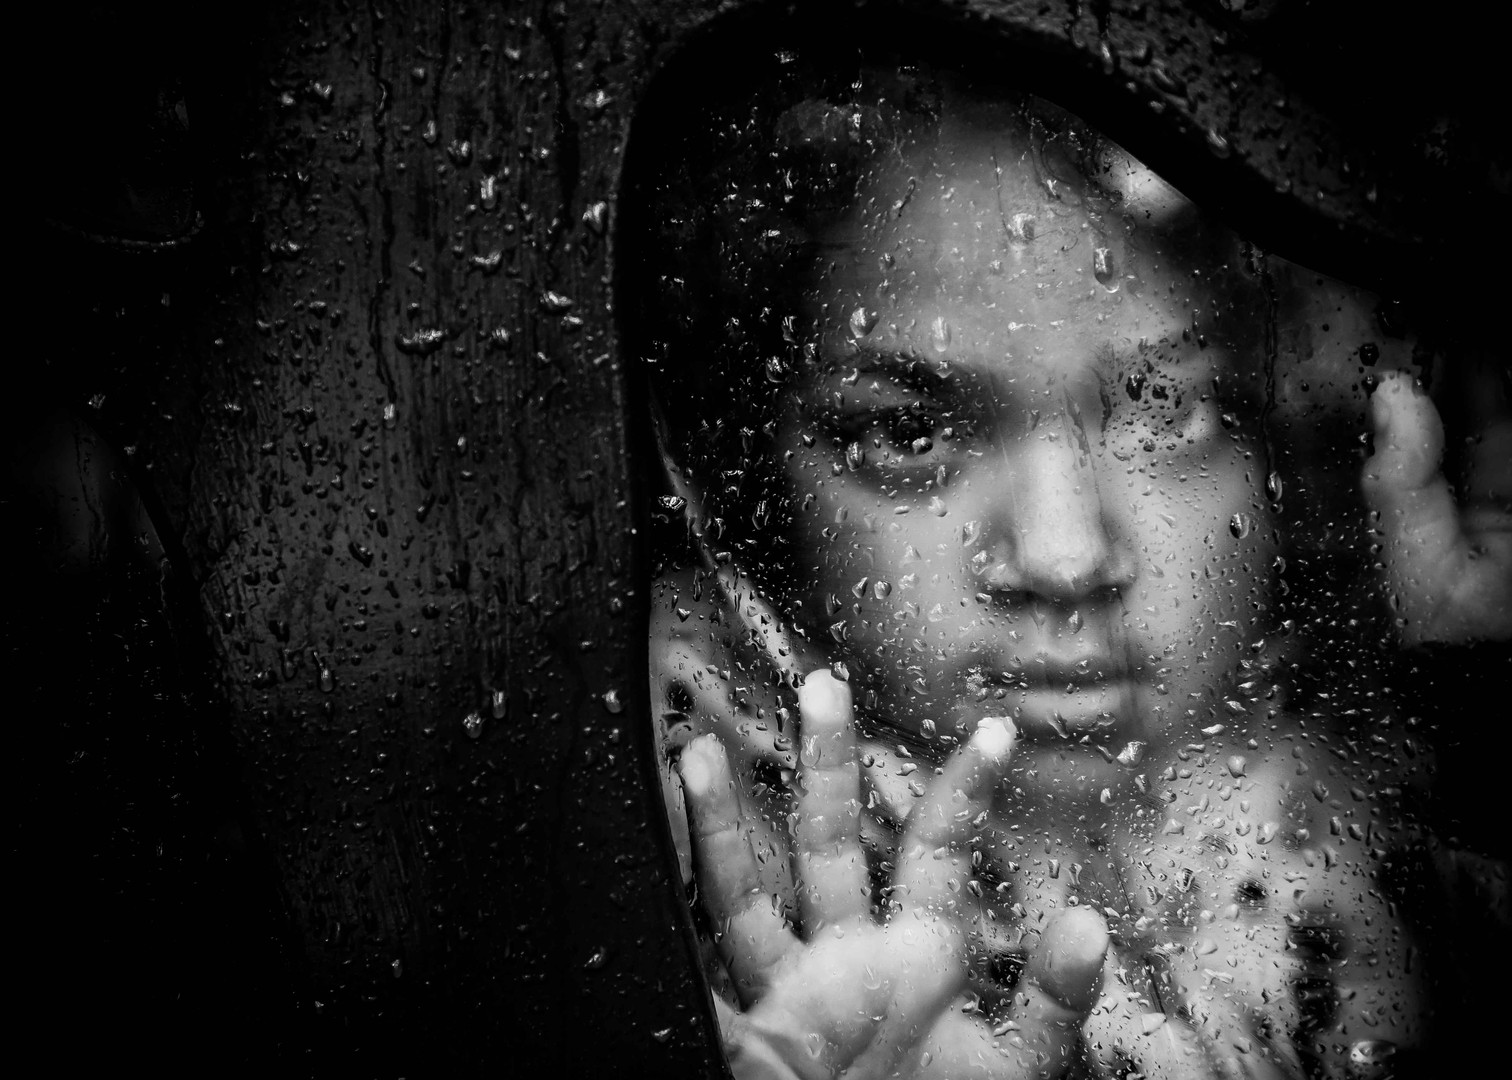 Black and white portrait taken through a glass window in the rain. Published in Shots Mag